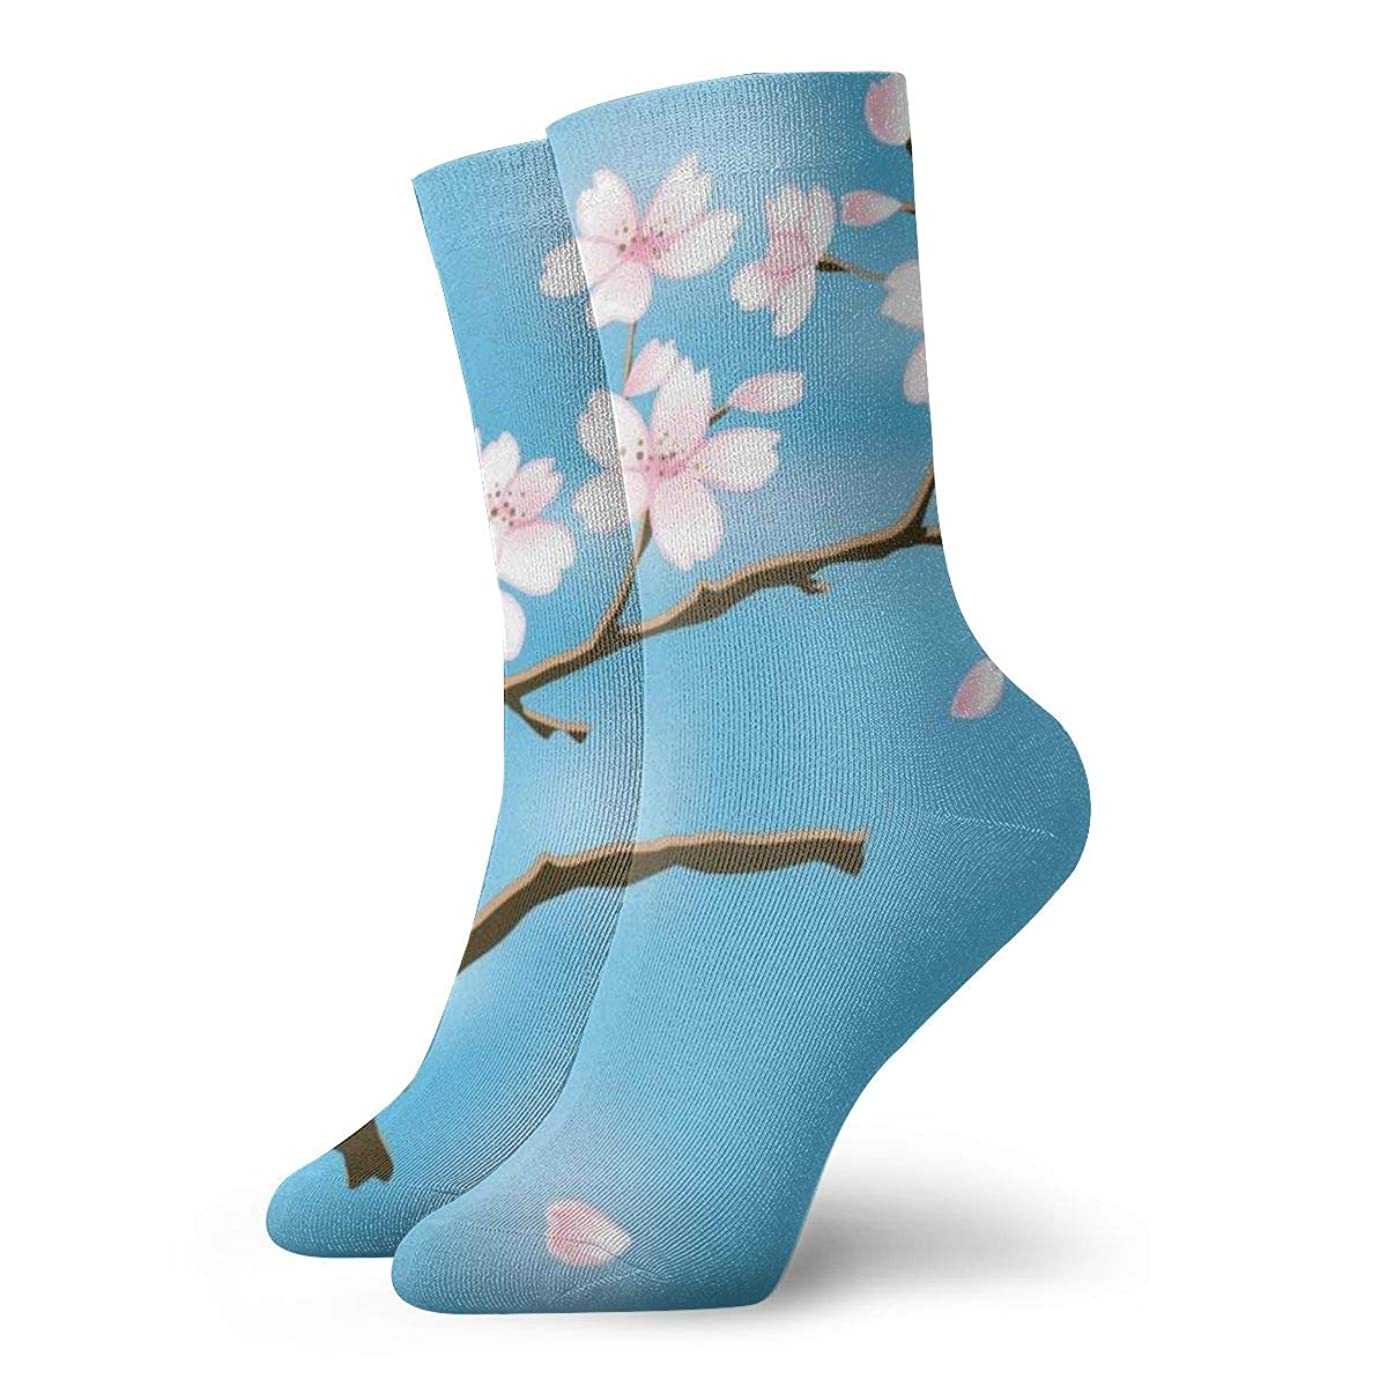 WEEDKEYCAT Spring Flowers Adult Short Socks Cotton Gym Socks for Mens Womens Yoga Hiking Cycling Running Soccer Sports